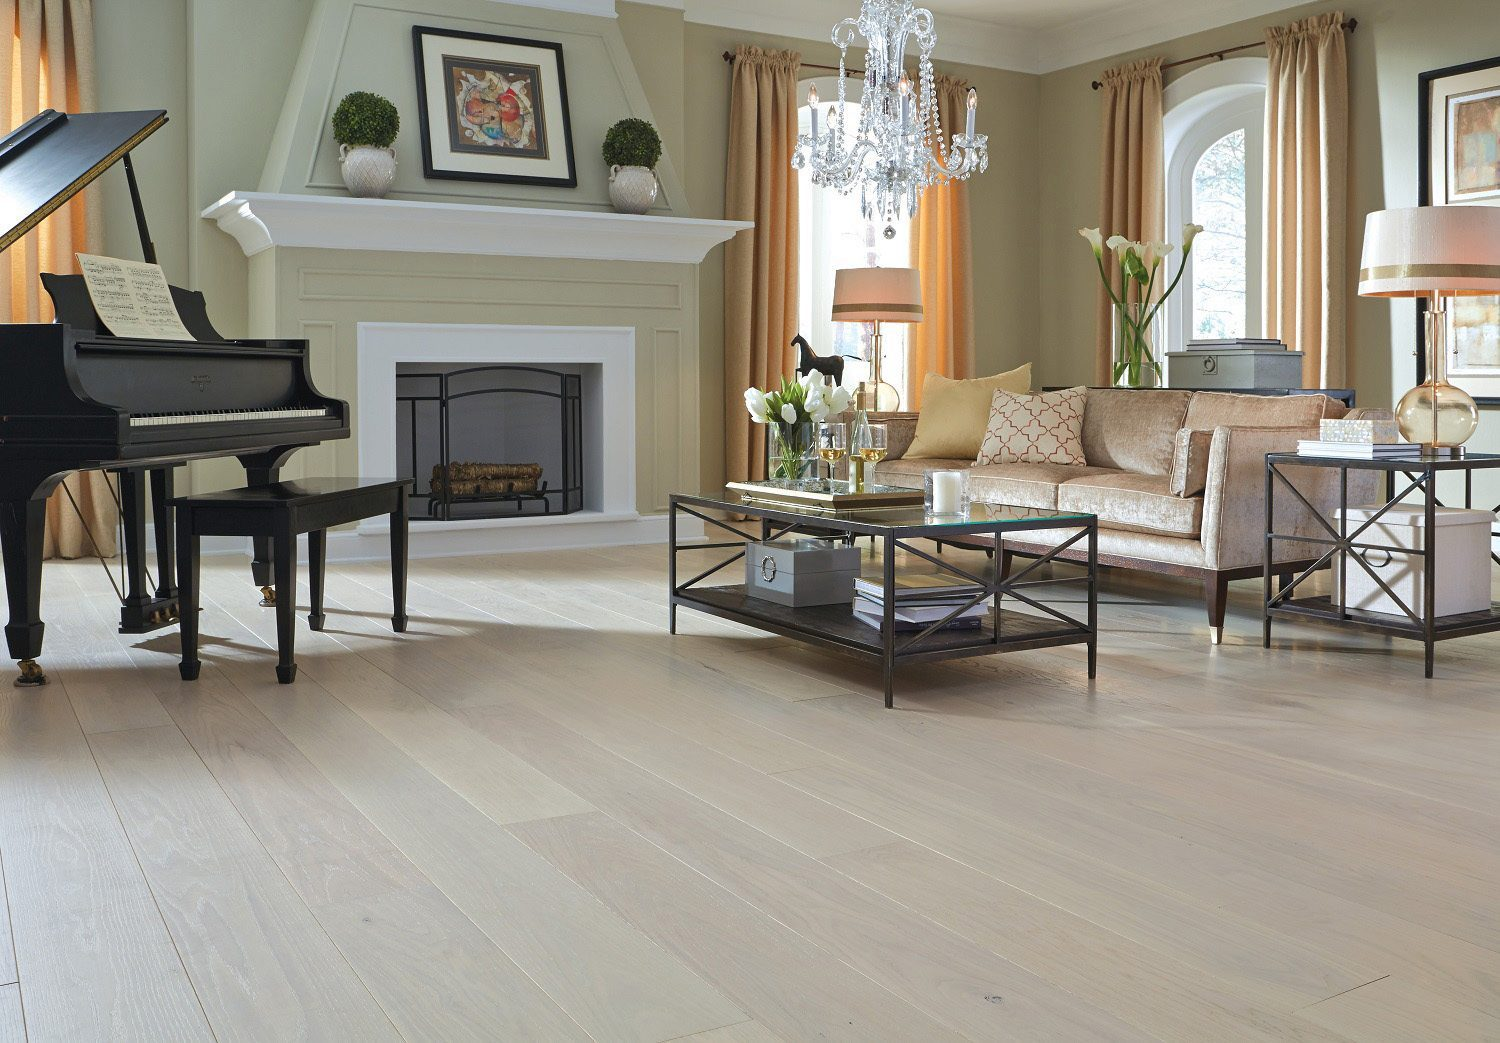 White Oak Flooring In A Living Room Carlisle Wide Plank